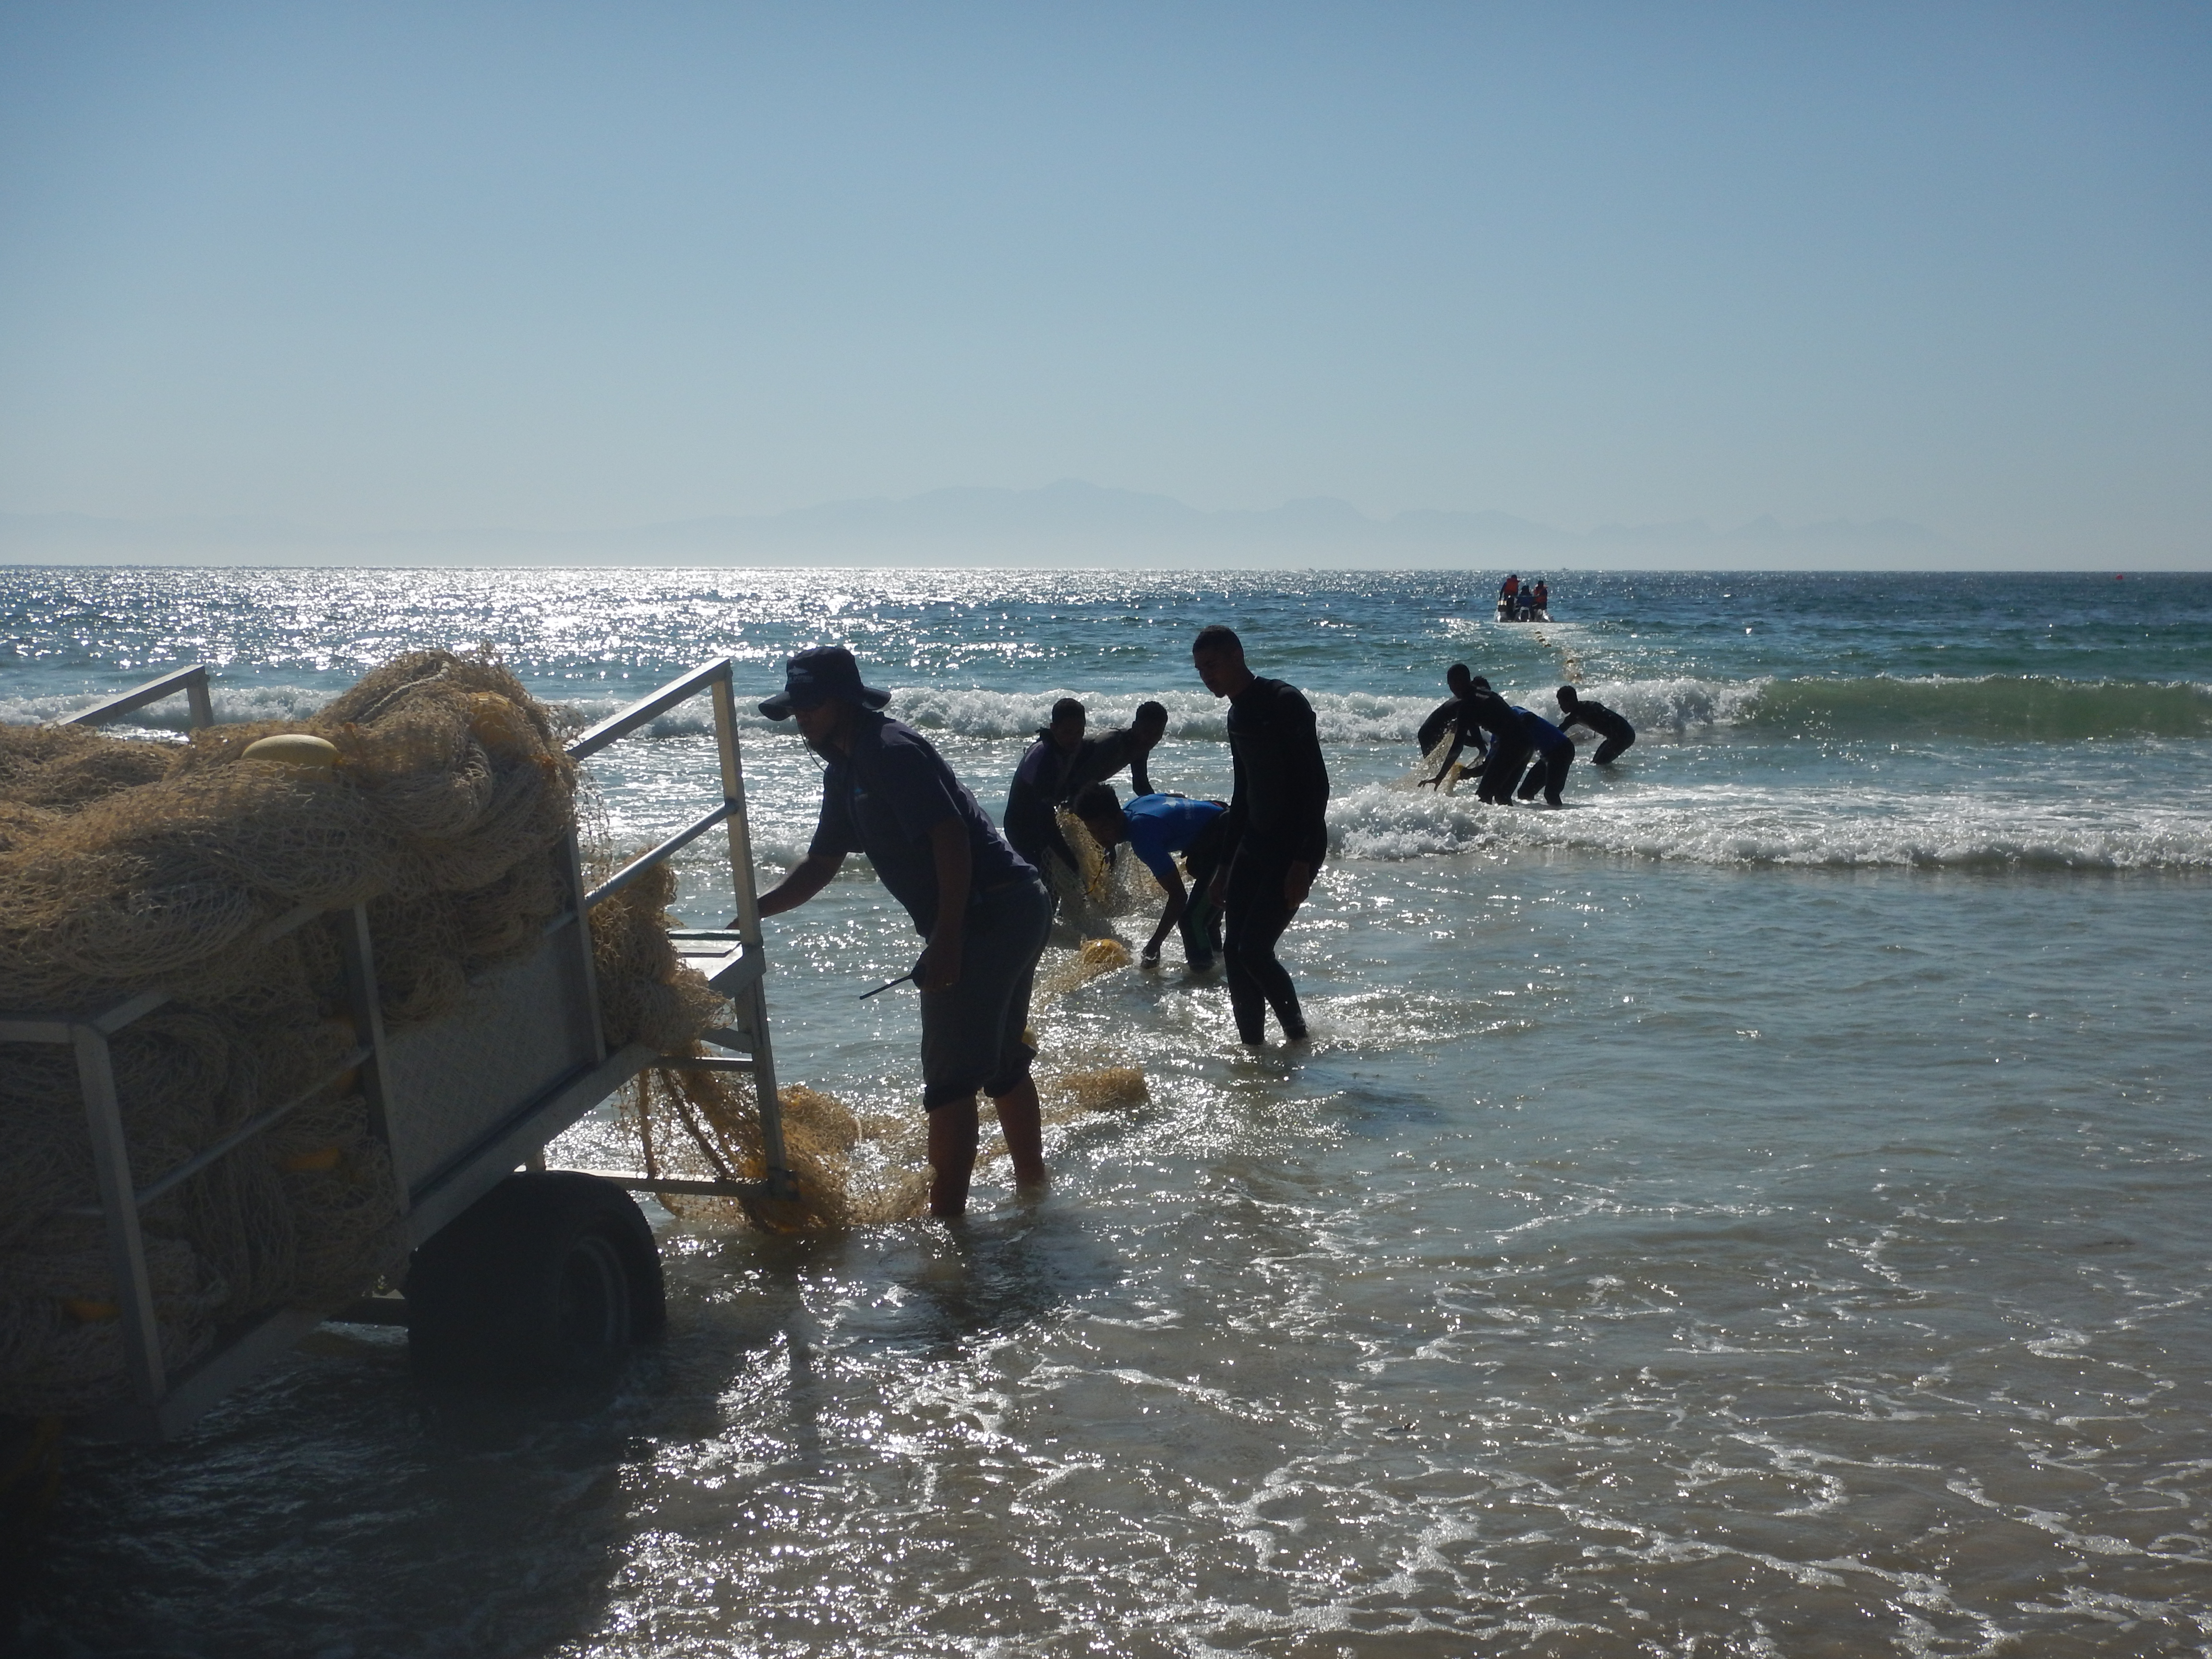 Setting up the shark exclusion net.